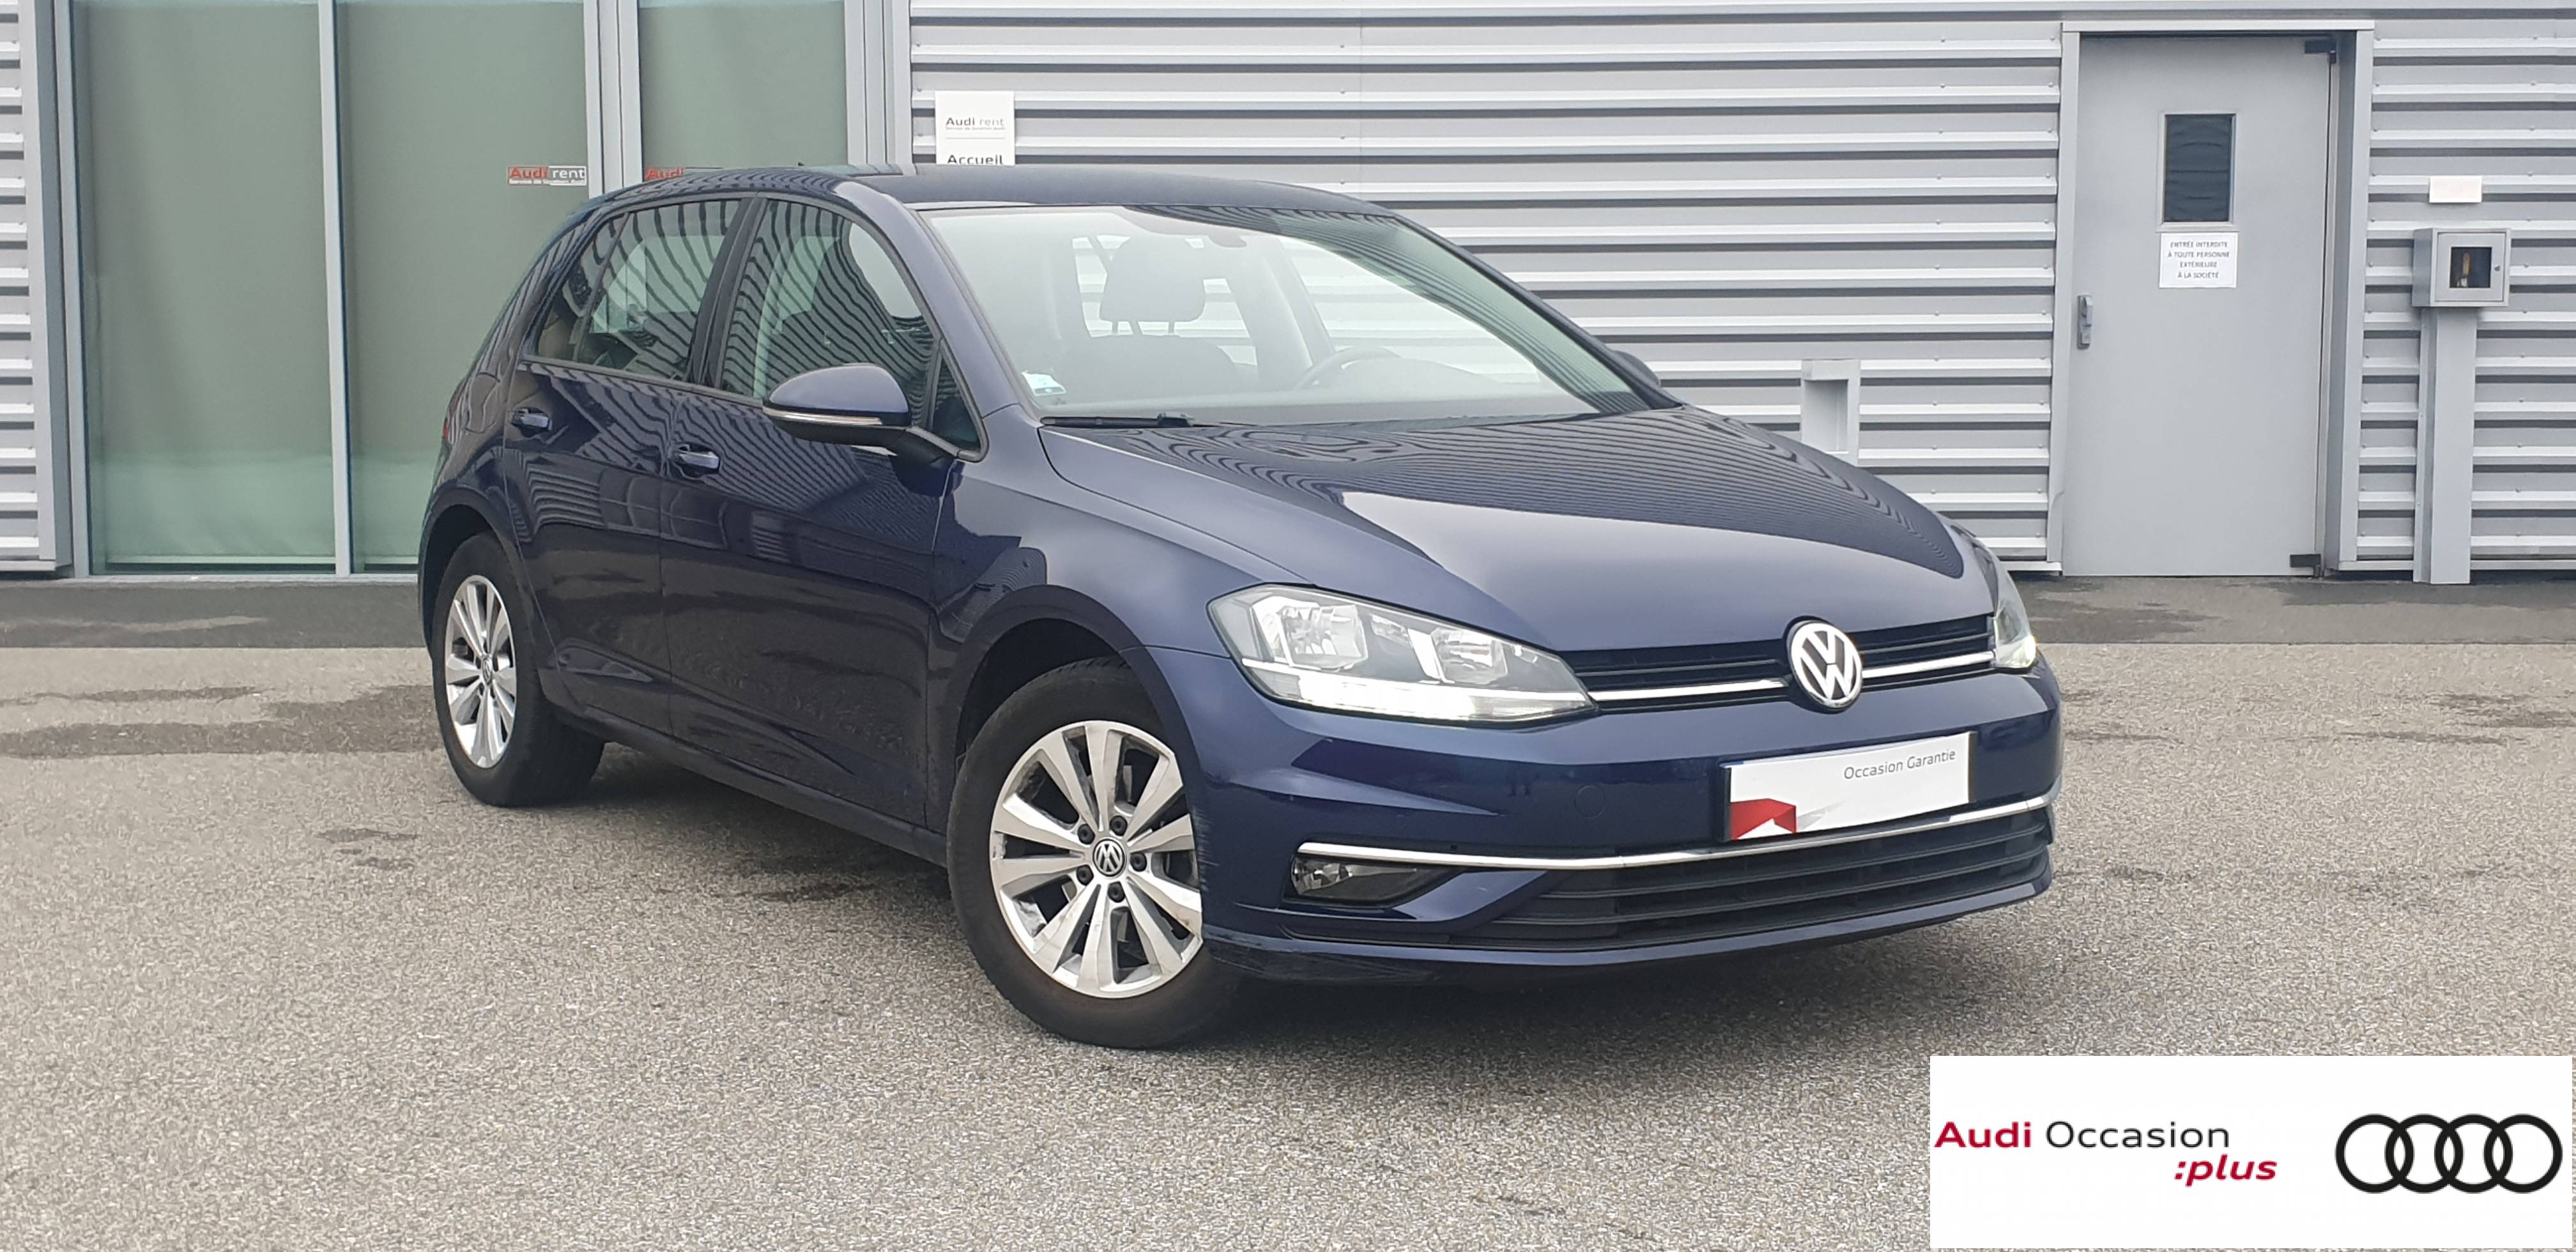 1 - Golf 1.6 TDI 115 BlueMotion Technology FAP DSG7